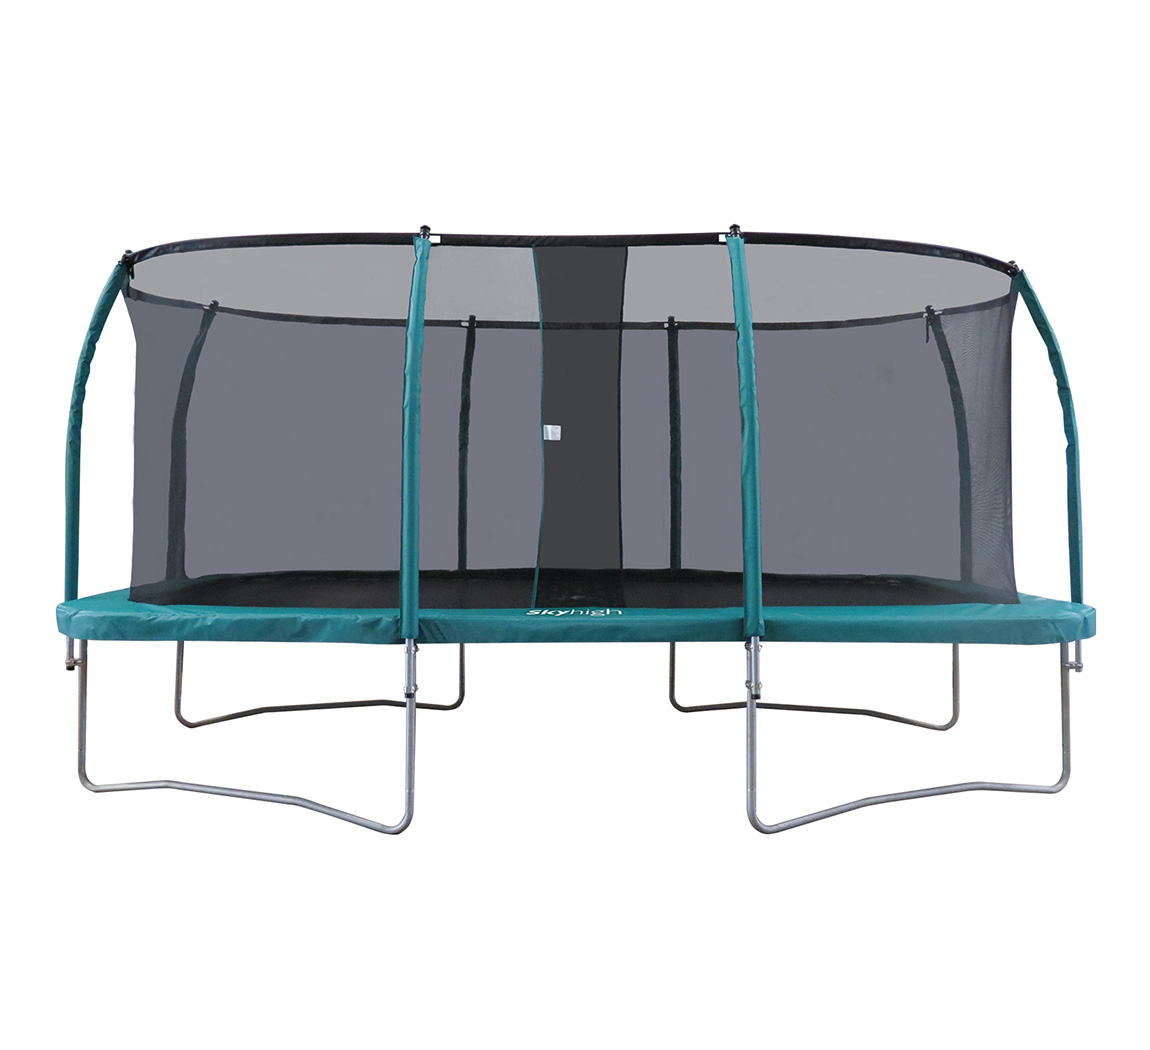 10ft X 17ft Rectangular Trampoline With Enclosure